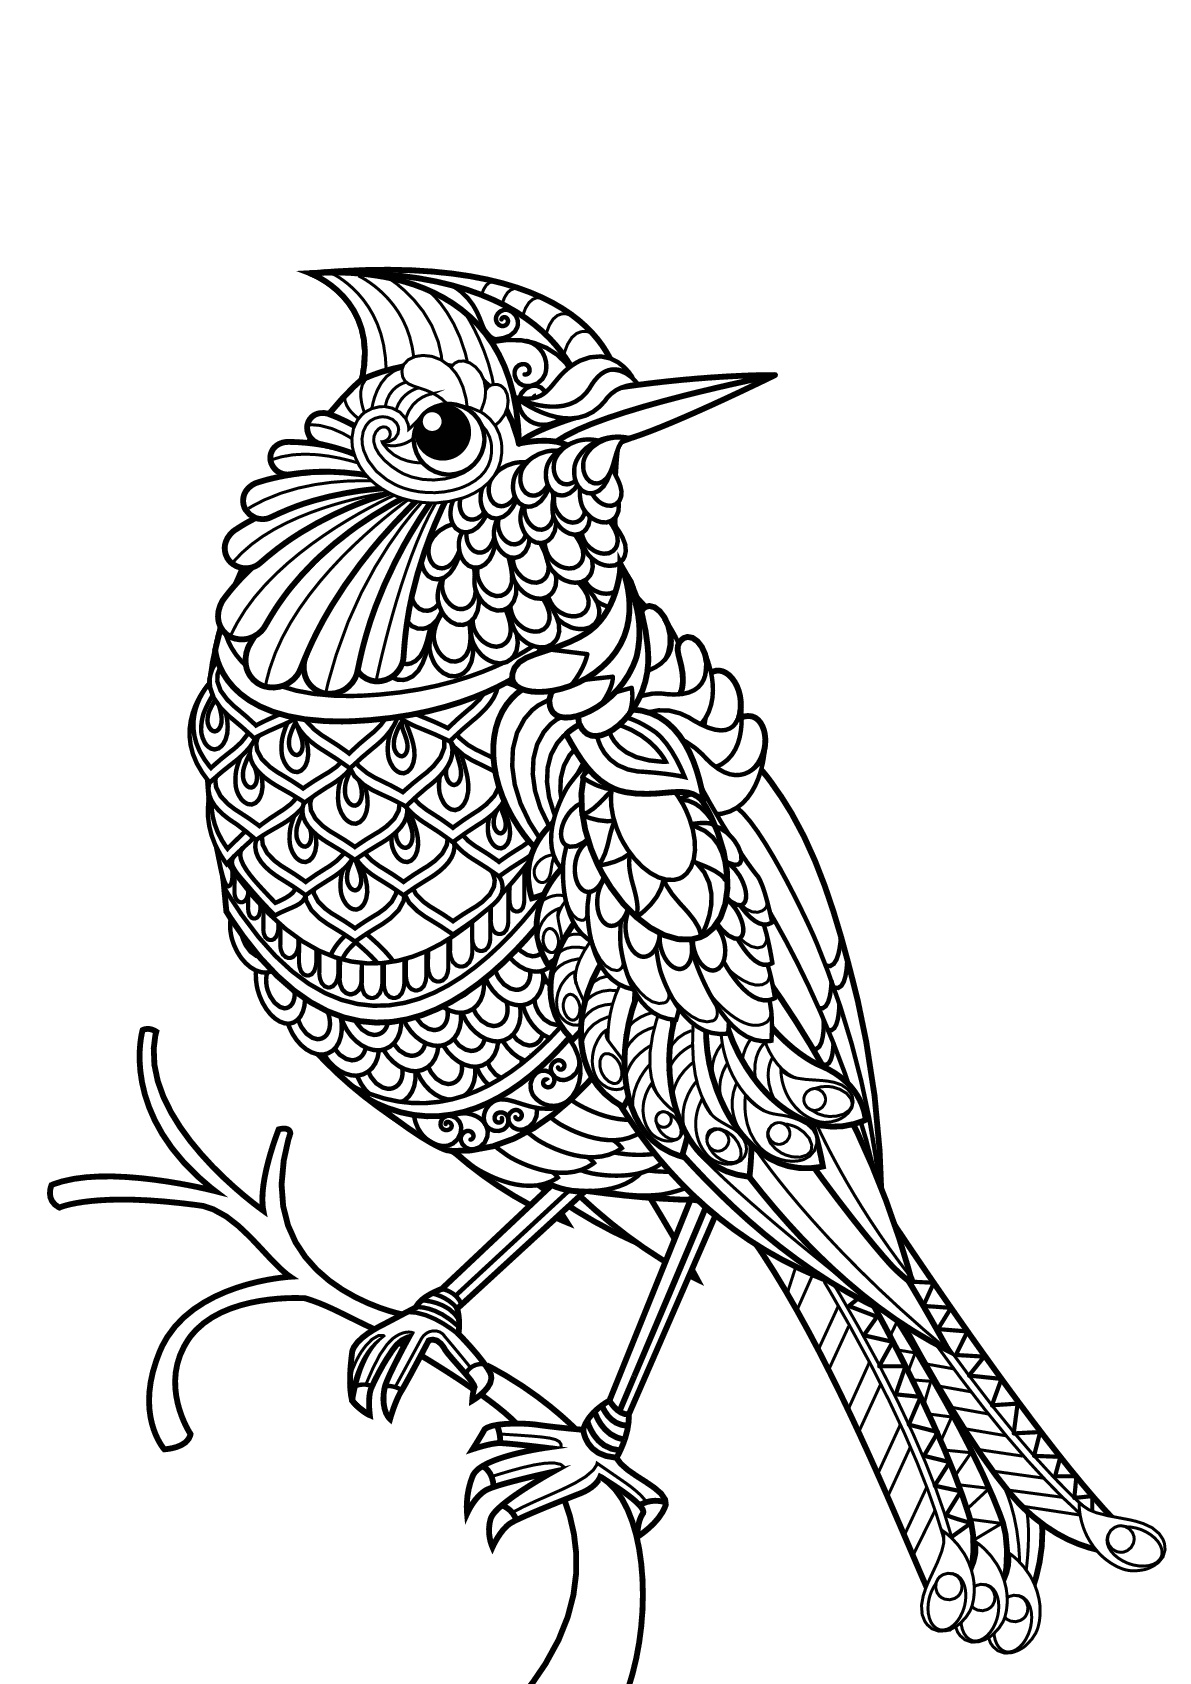 bird coloring images cute bird coloring page for kids tsgoscom images coloring bird